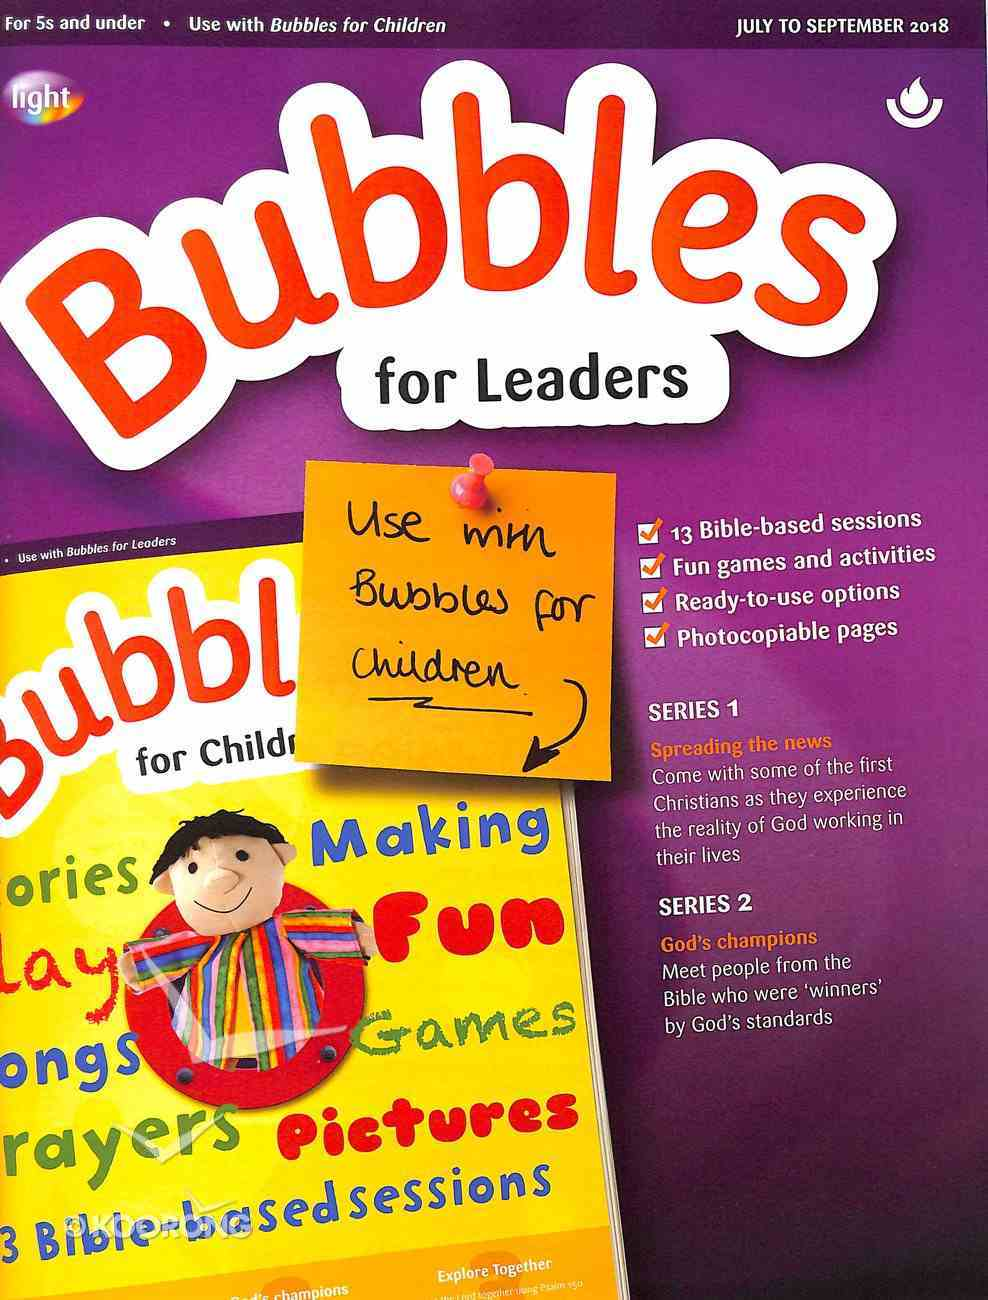 Light: Bubbles 2018 #03: Jul-Sep Leader's Guide (5 And Under) Paperback